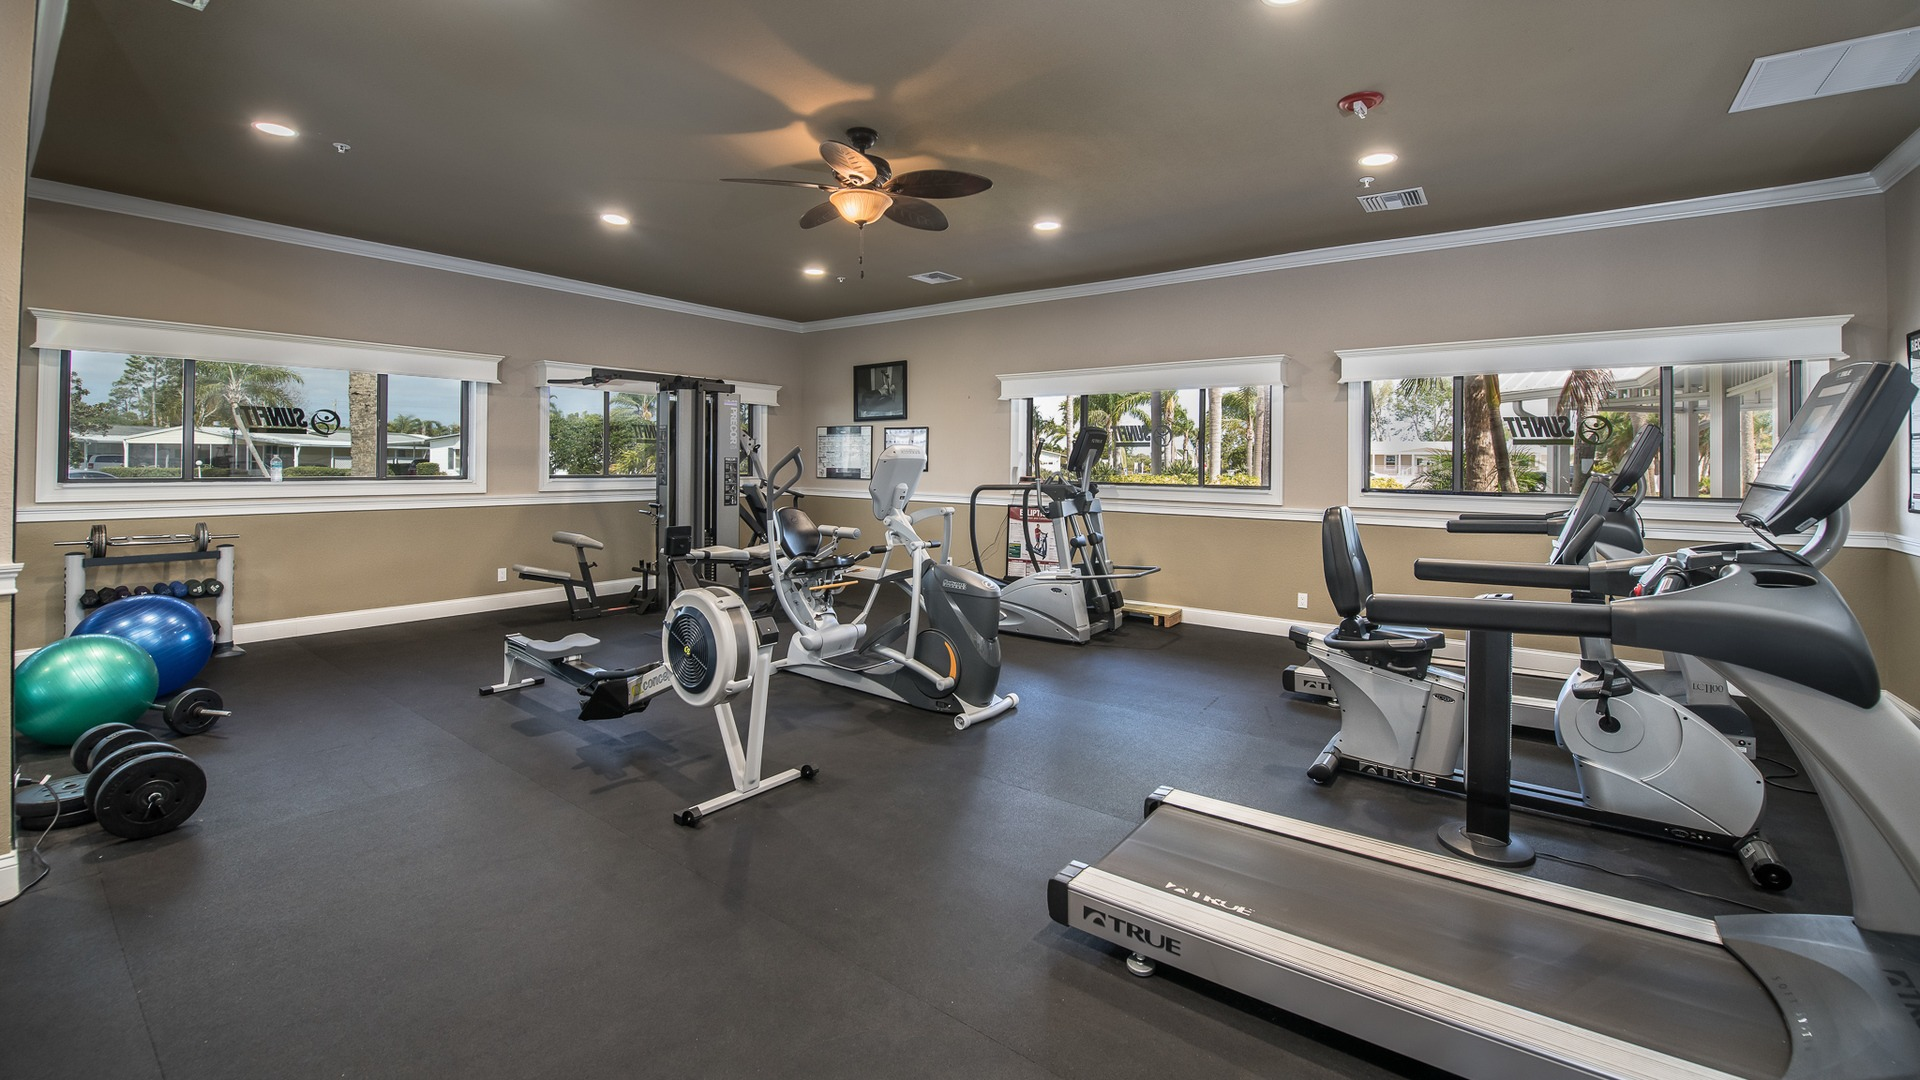 Park Place 55+ Manufactured Homes Community Fitness Center in Sebastian, FL